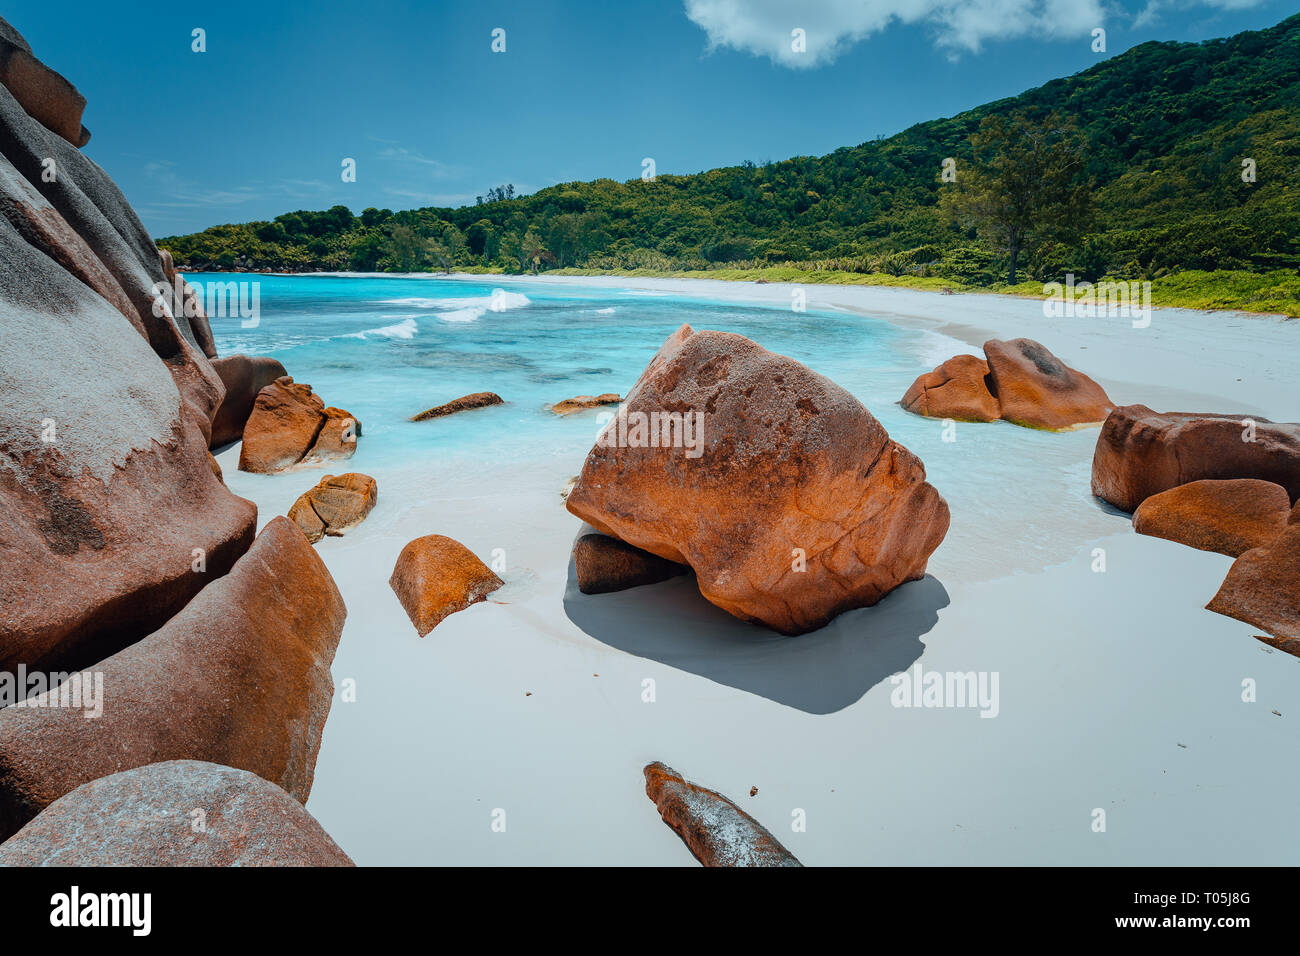 Tropical lagoon with granite boulders in the turquoise water and a pristine white sand at Anse Cocos, La Digue island, Seychelles Great location for r Stock Photo